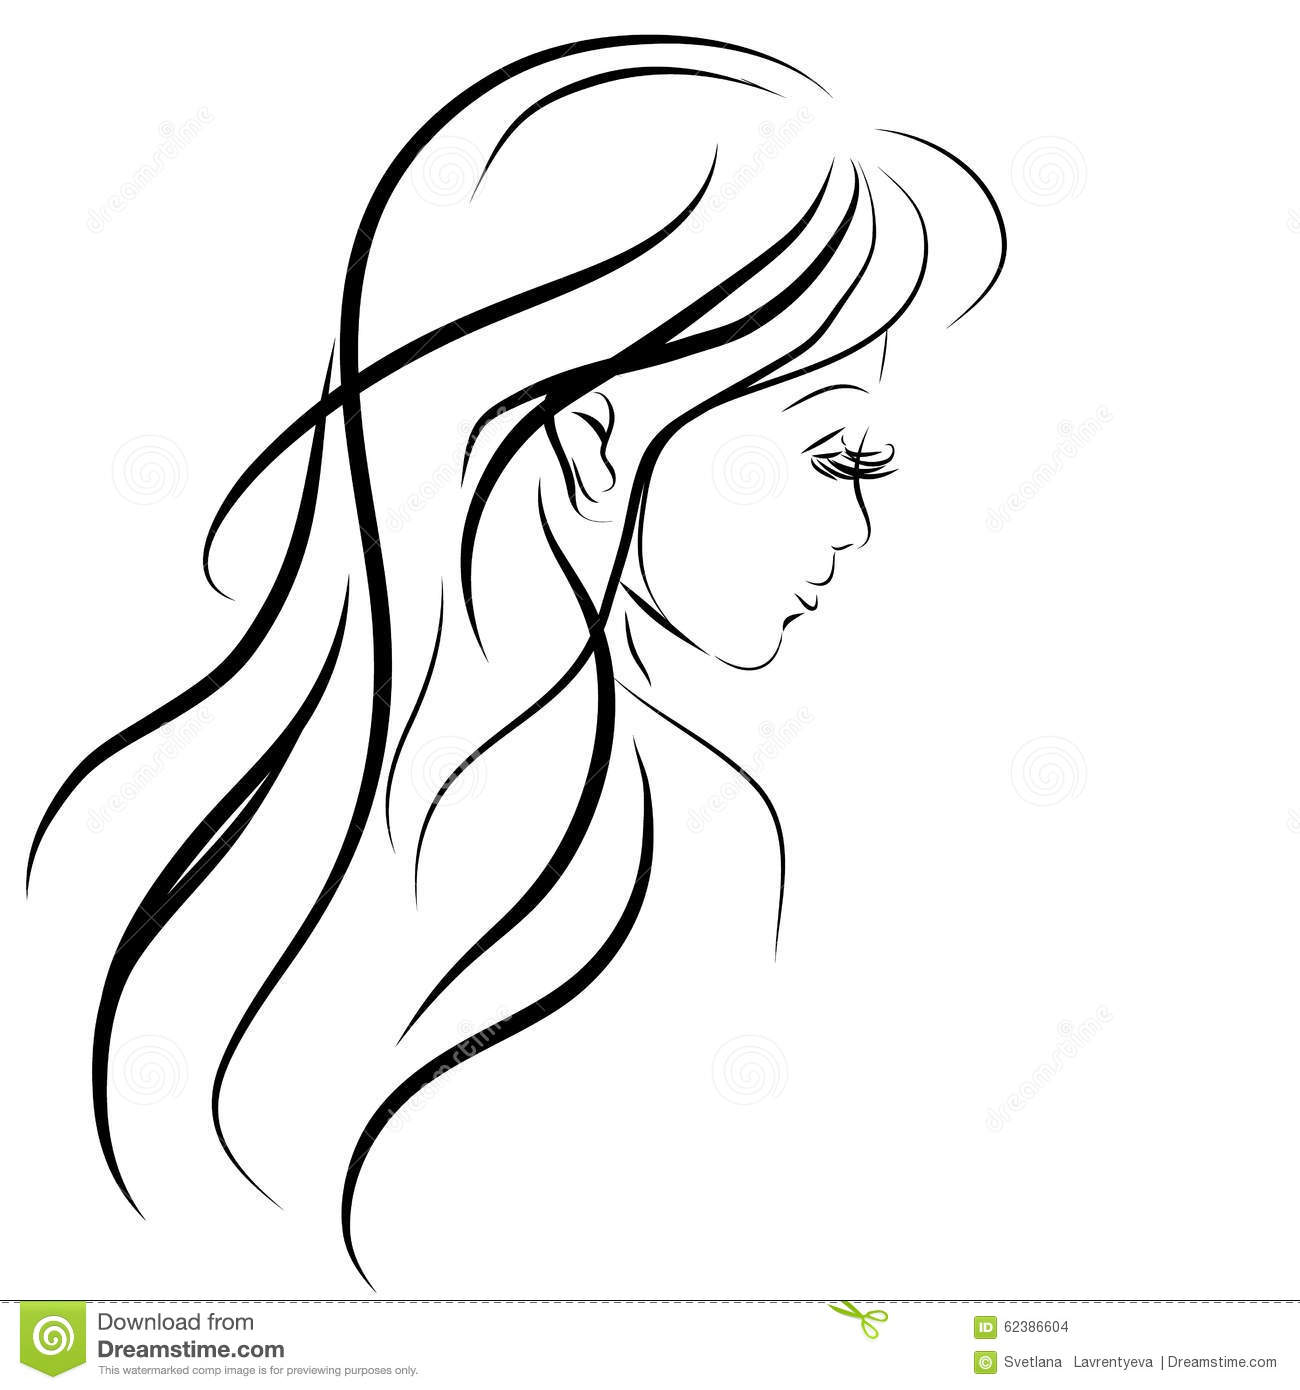 Easy Coloring Pages Of A Girls Face